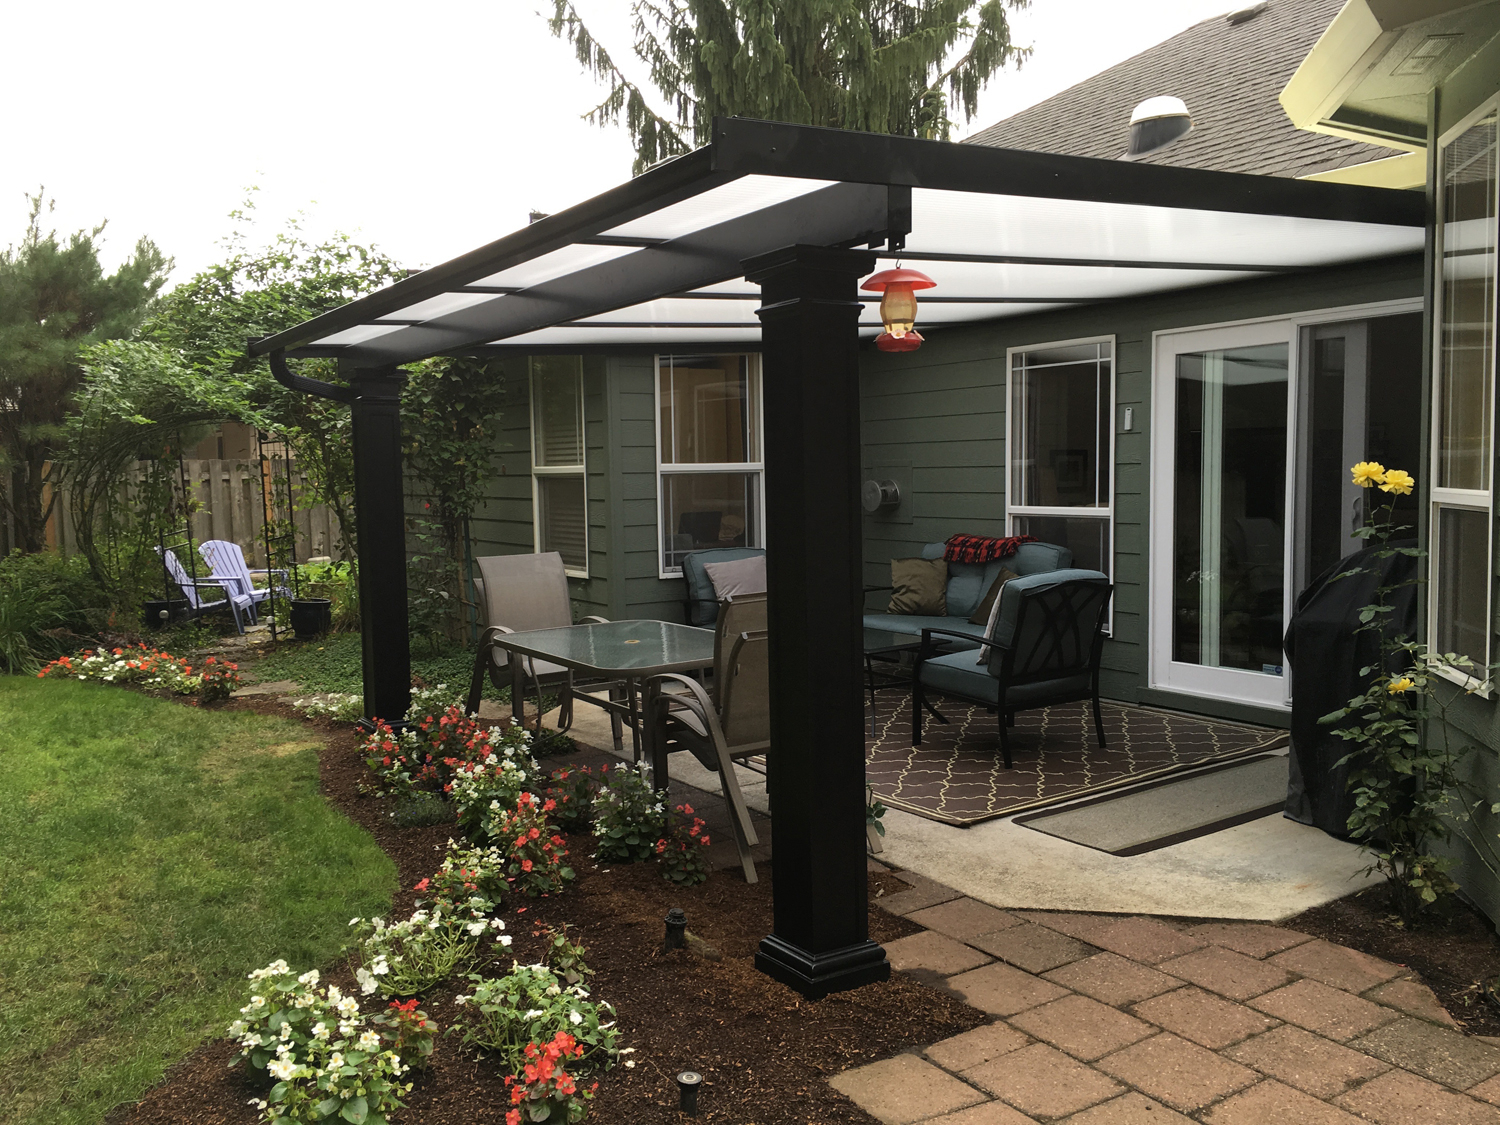 Patio Rooms Covers Sunrooms Swimming Pool Enclosures with regard to size 1500 X 1125